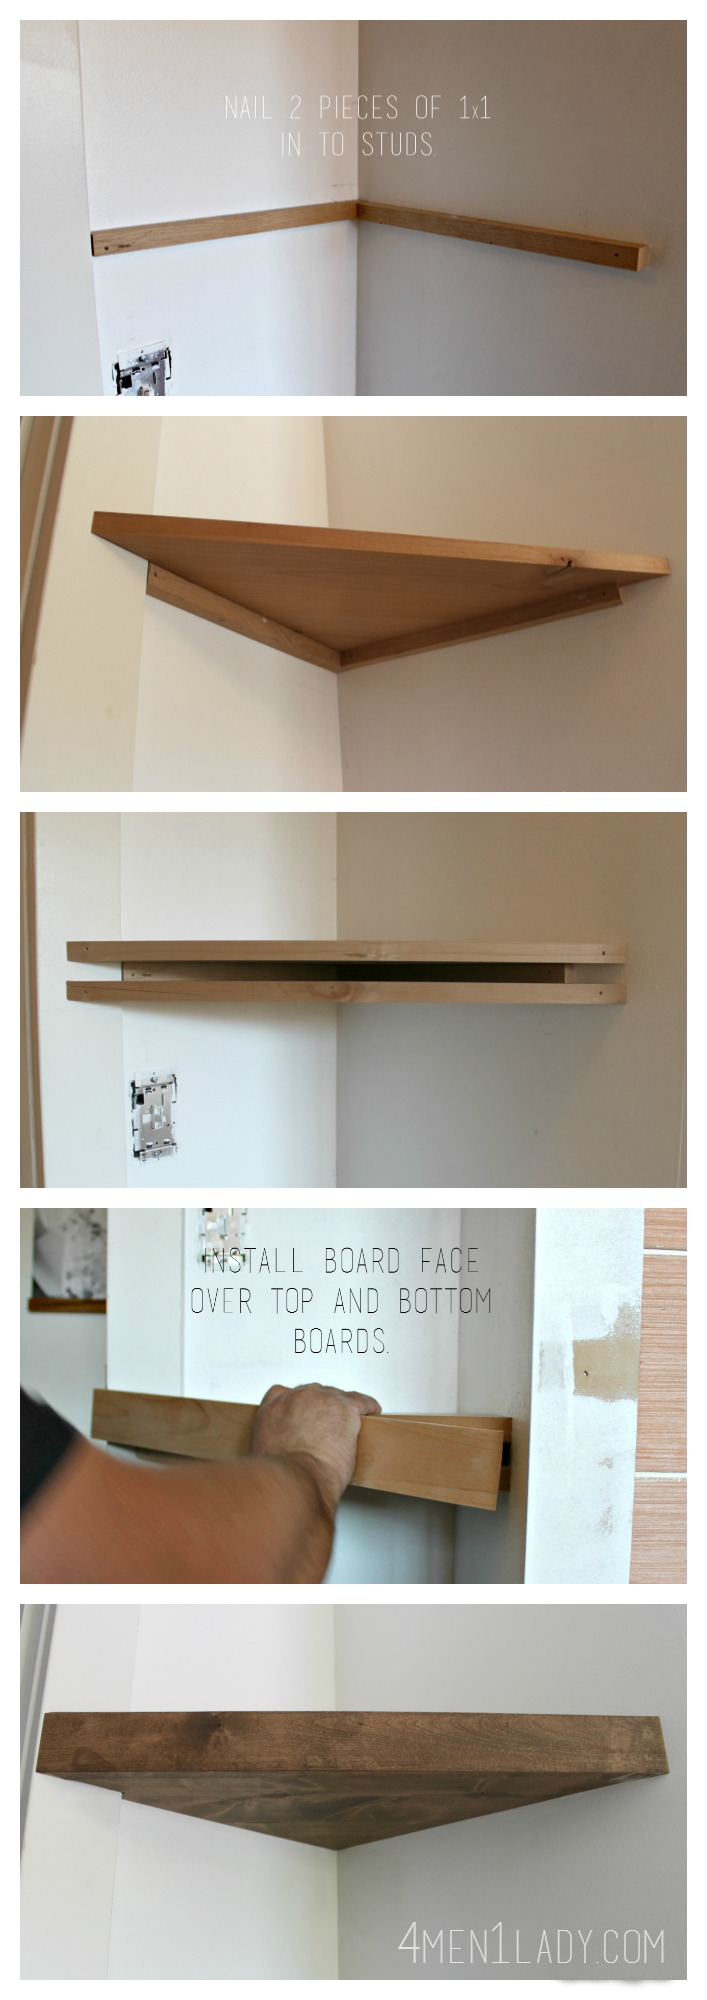 When life gives you lemons…make corner floating shelves